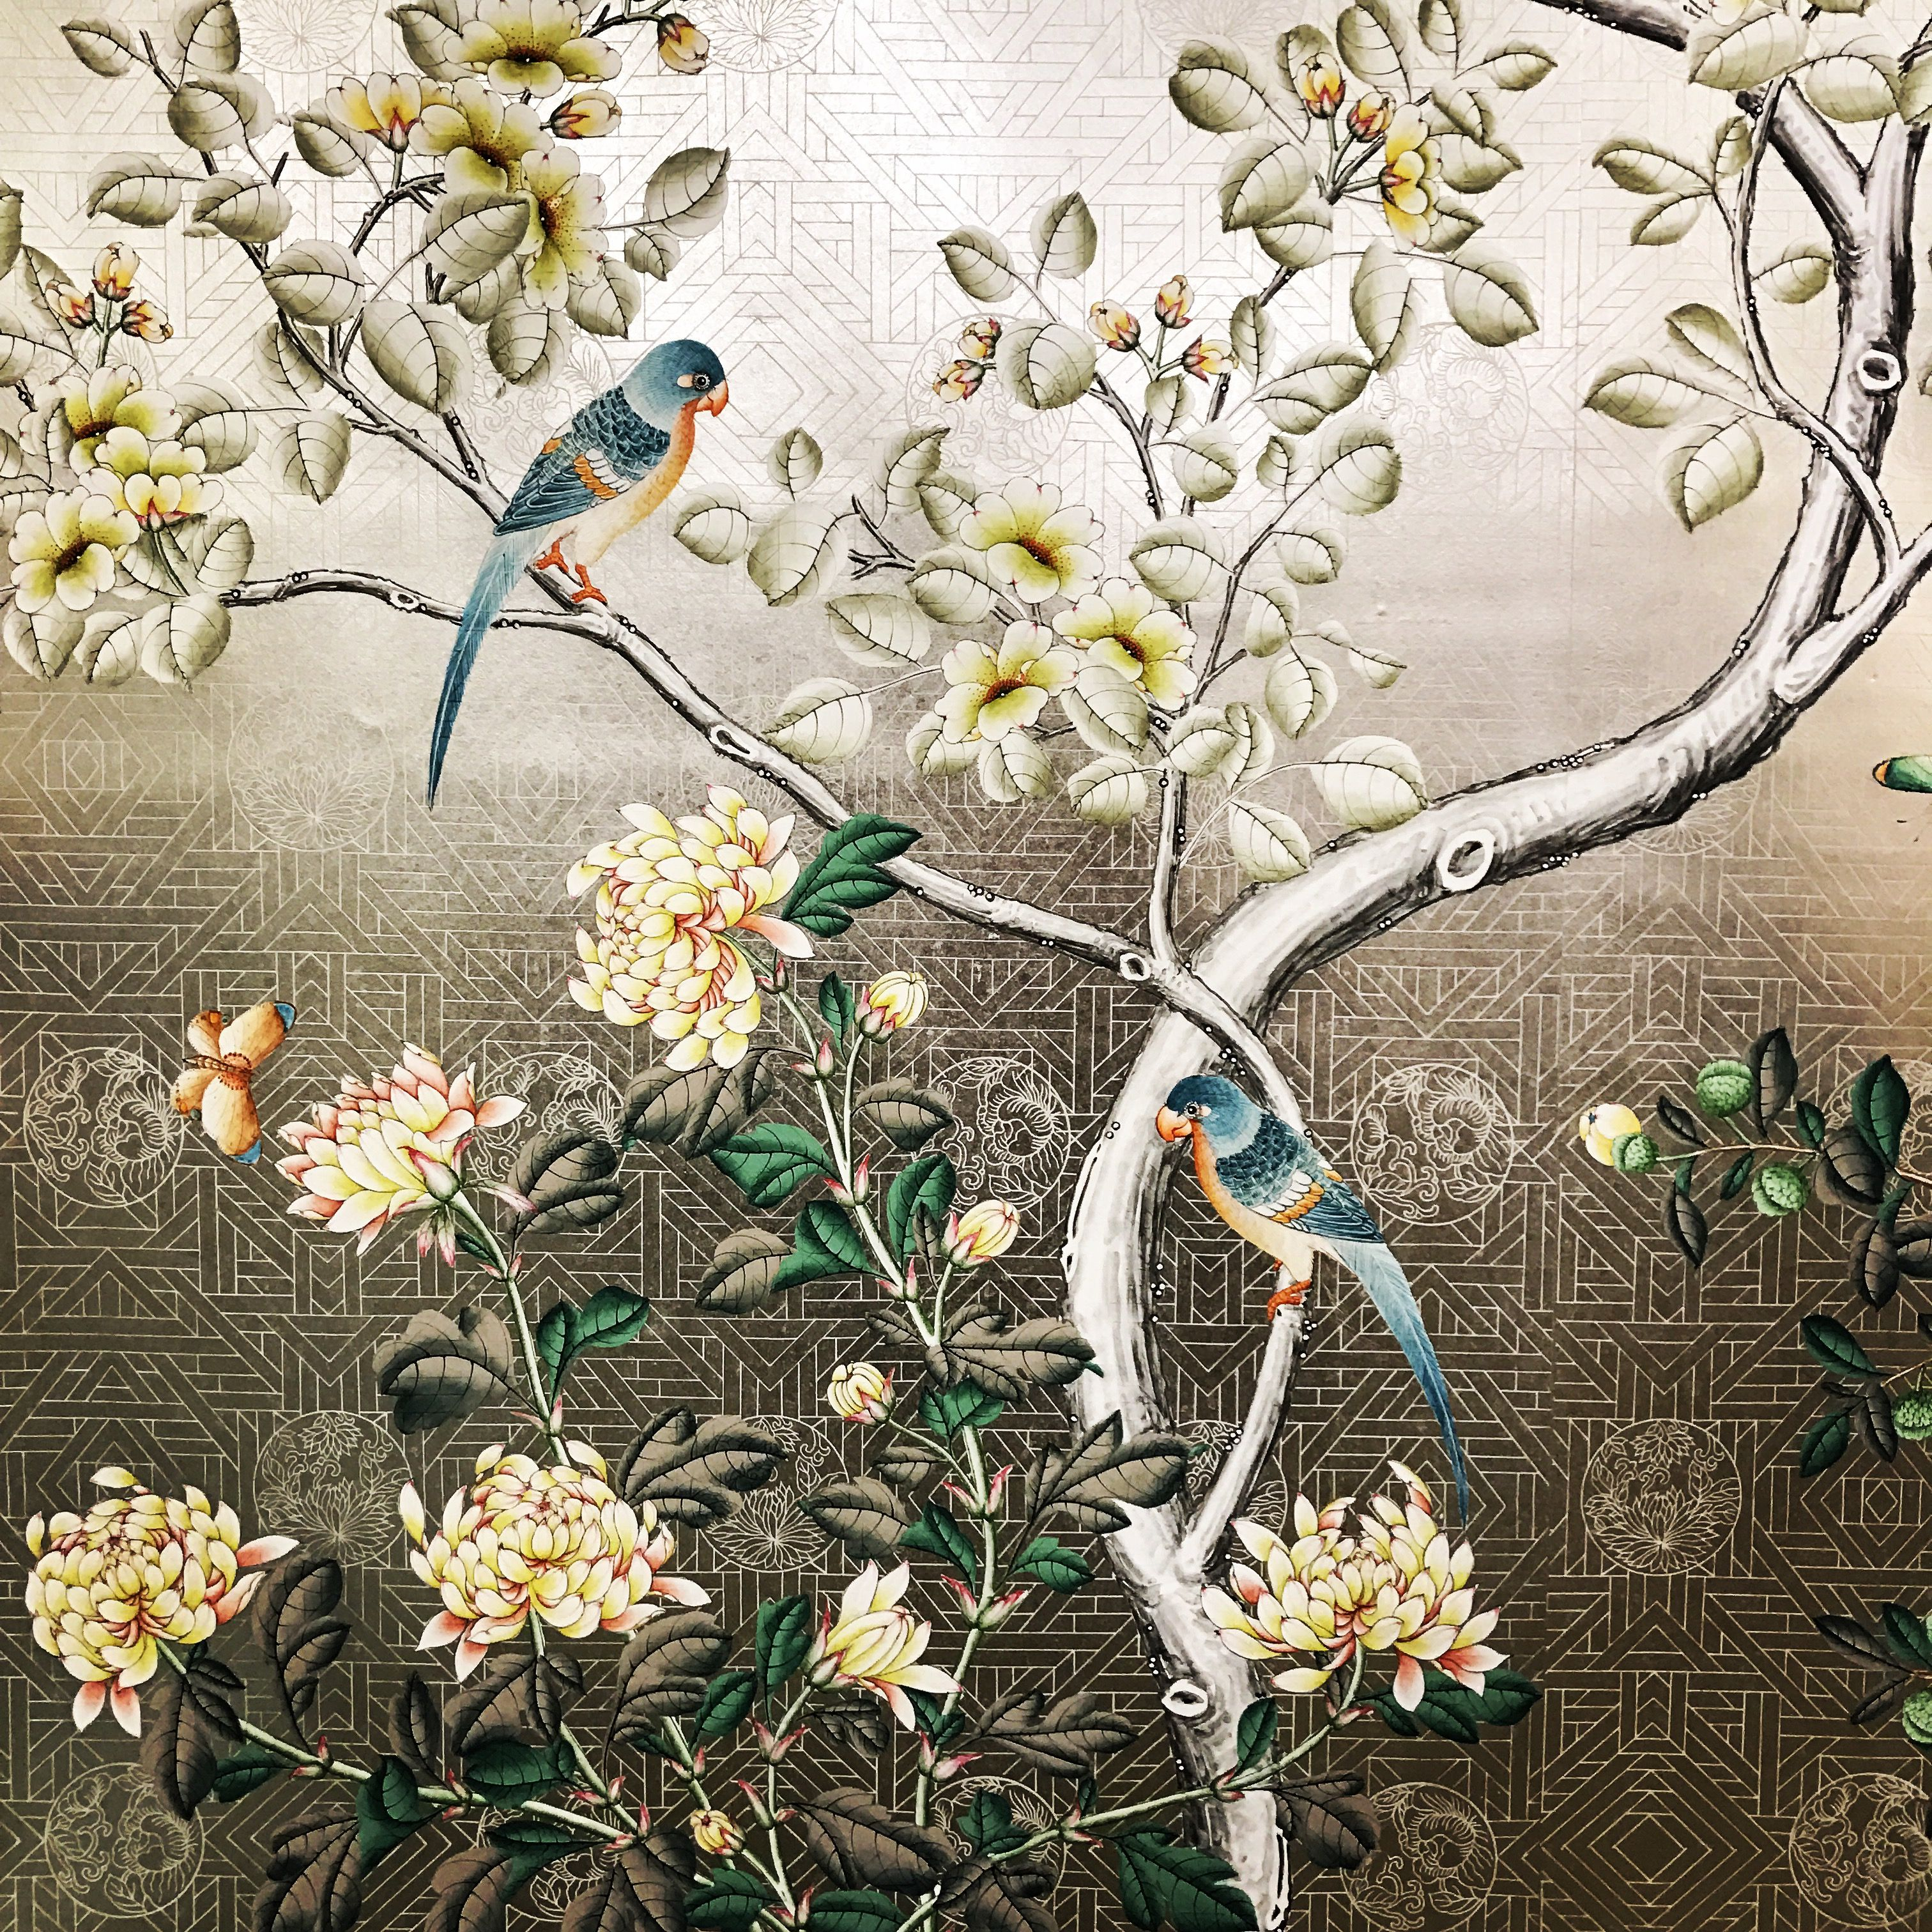 Pin by Gracie Studio on Gracie handpainted wallpapers